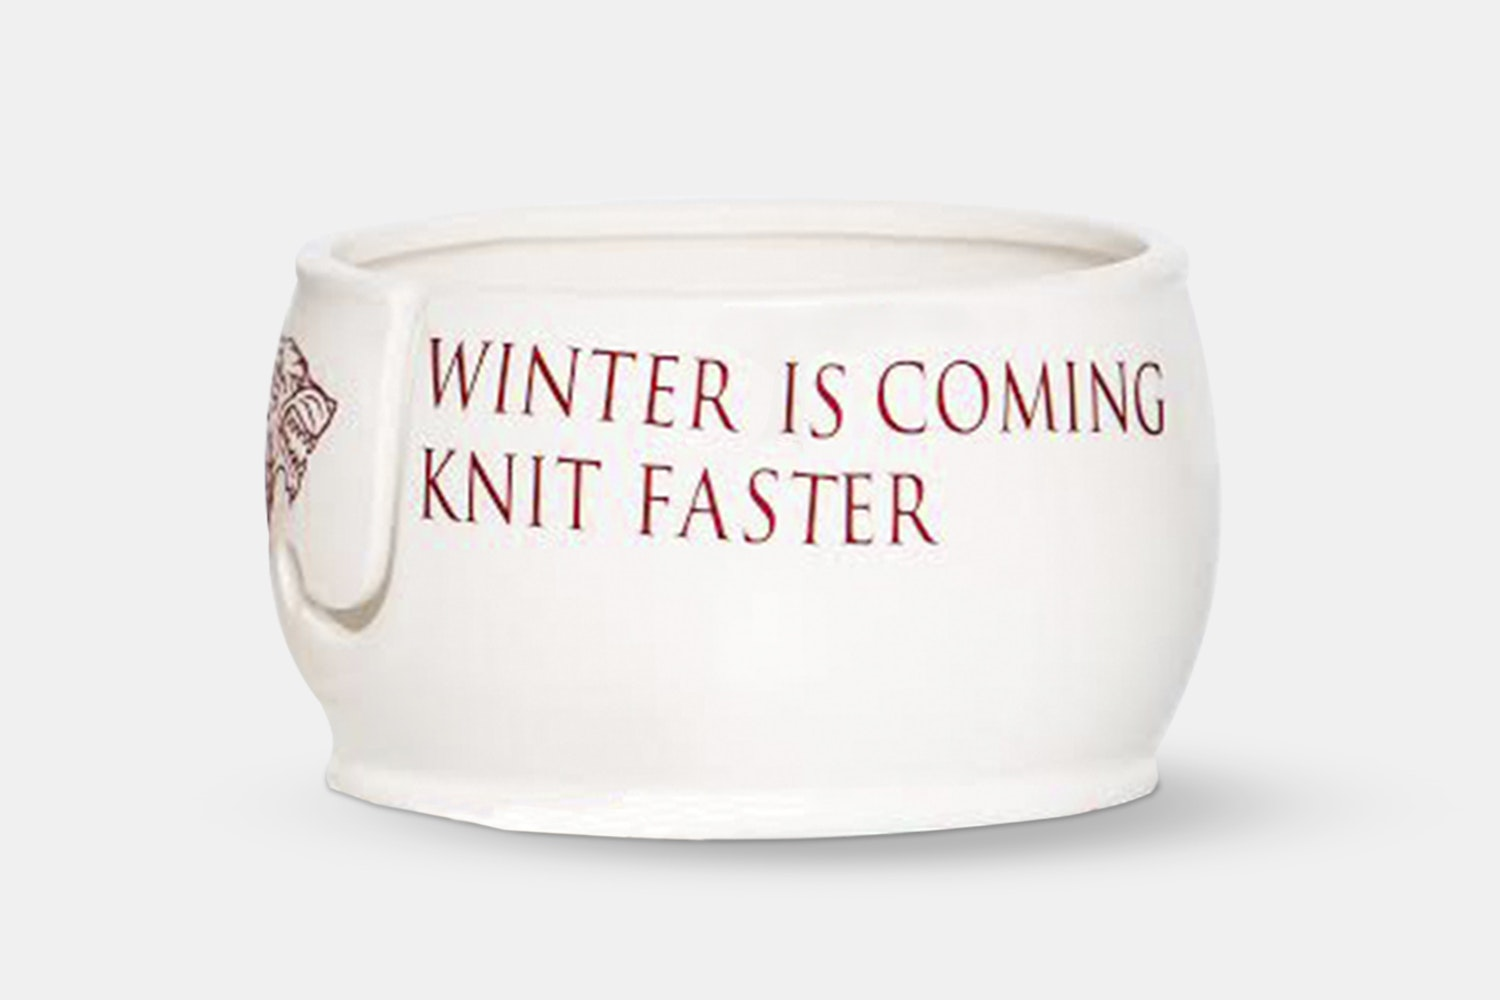 Winter is coming. Knit faster.